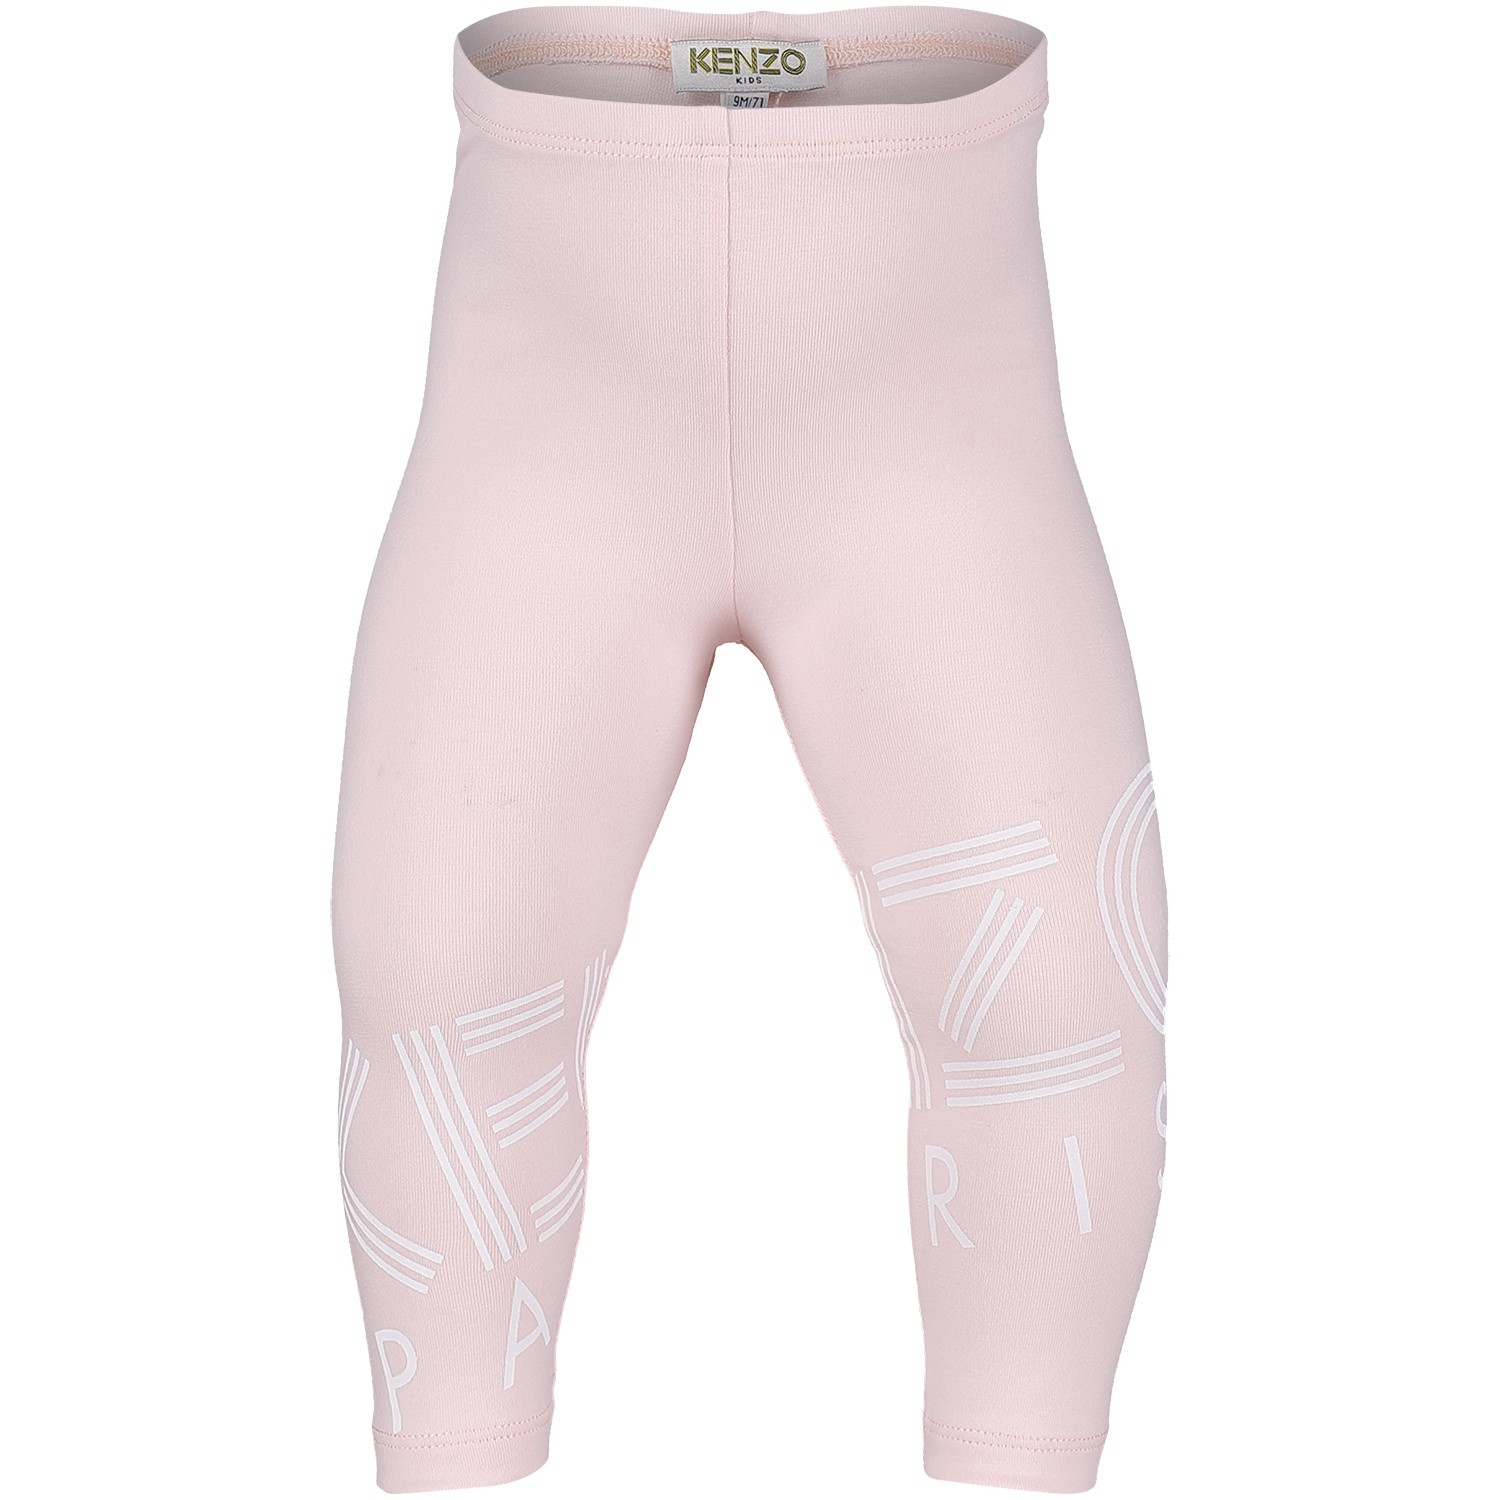 Picture of Kenzo KM24007 baby legging light pink